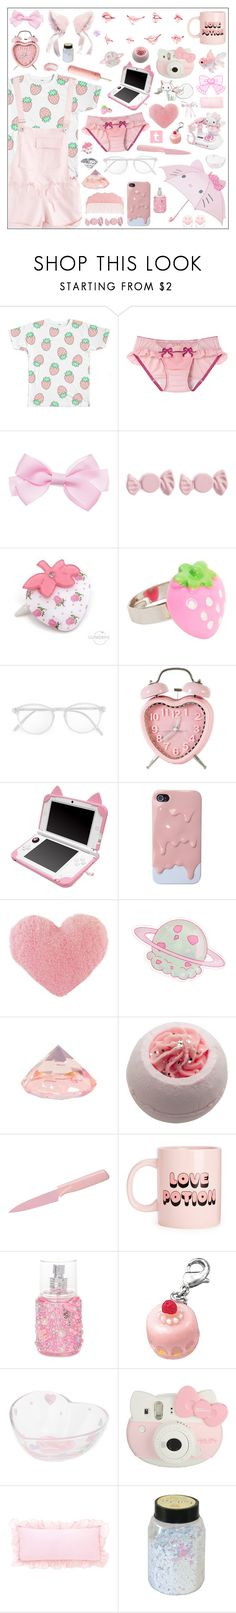 """.: STRAWBERRIES AND CREAM :."" by yumoto-hakone ❤ liked on Polyvore featuring Marc by Marc Jacobs, Cuteberry, RetroSuperFuture, Cotton Candy, Kuhn Rikon, claire's, Hello Kitty, Puella, Pink and kawaii"